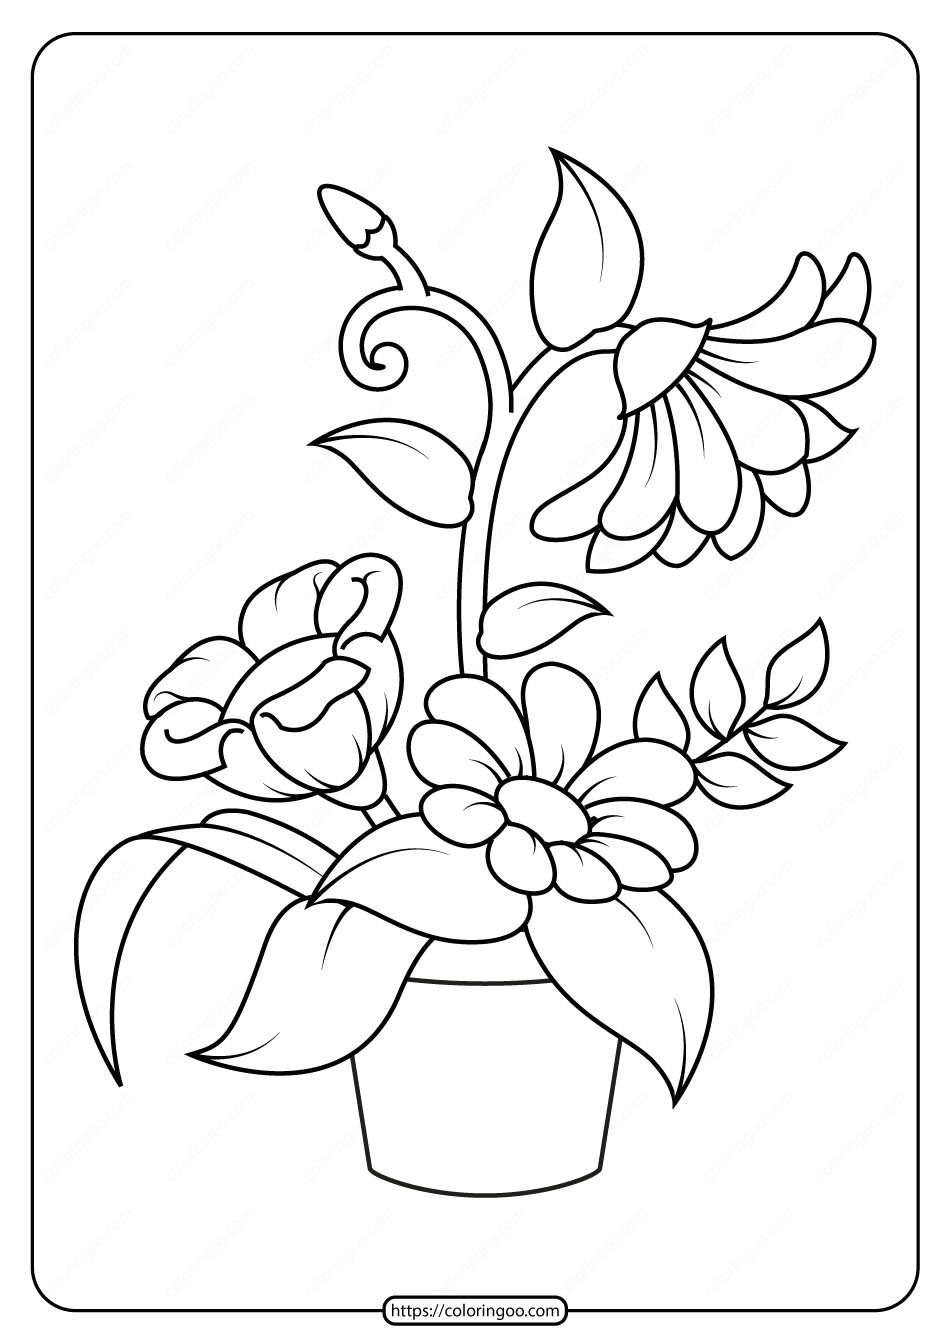 flowers coloring sheet poppy flowers coloring pages download and print for free sheet coloring flowers